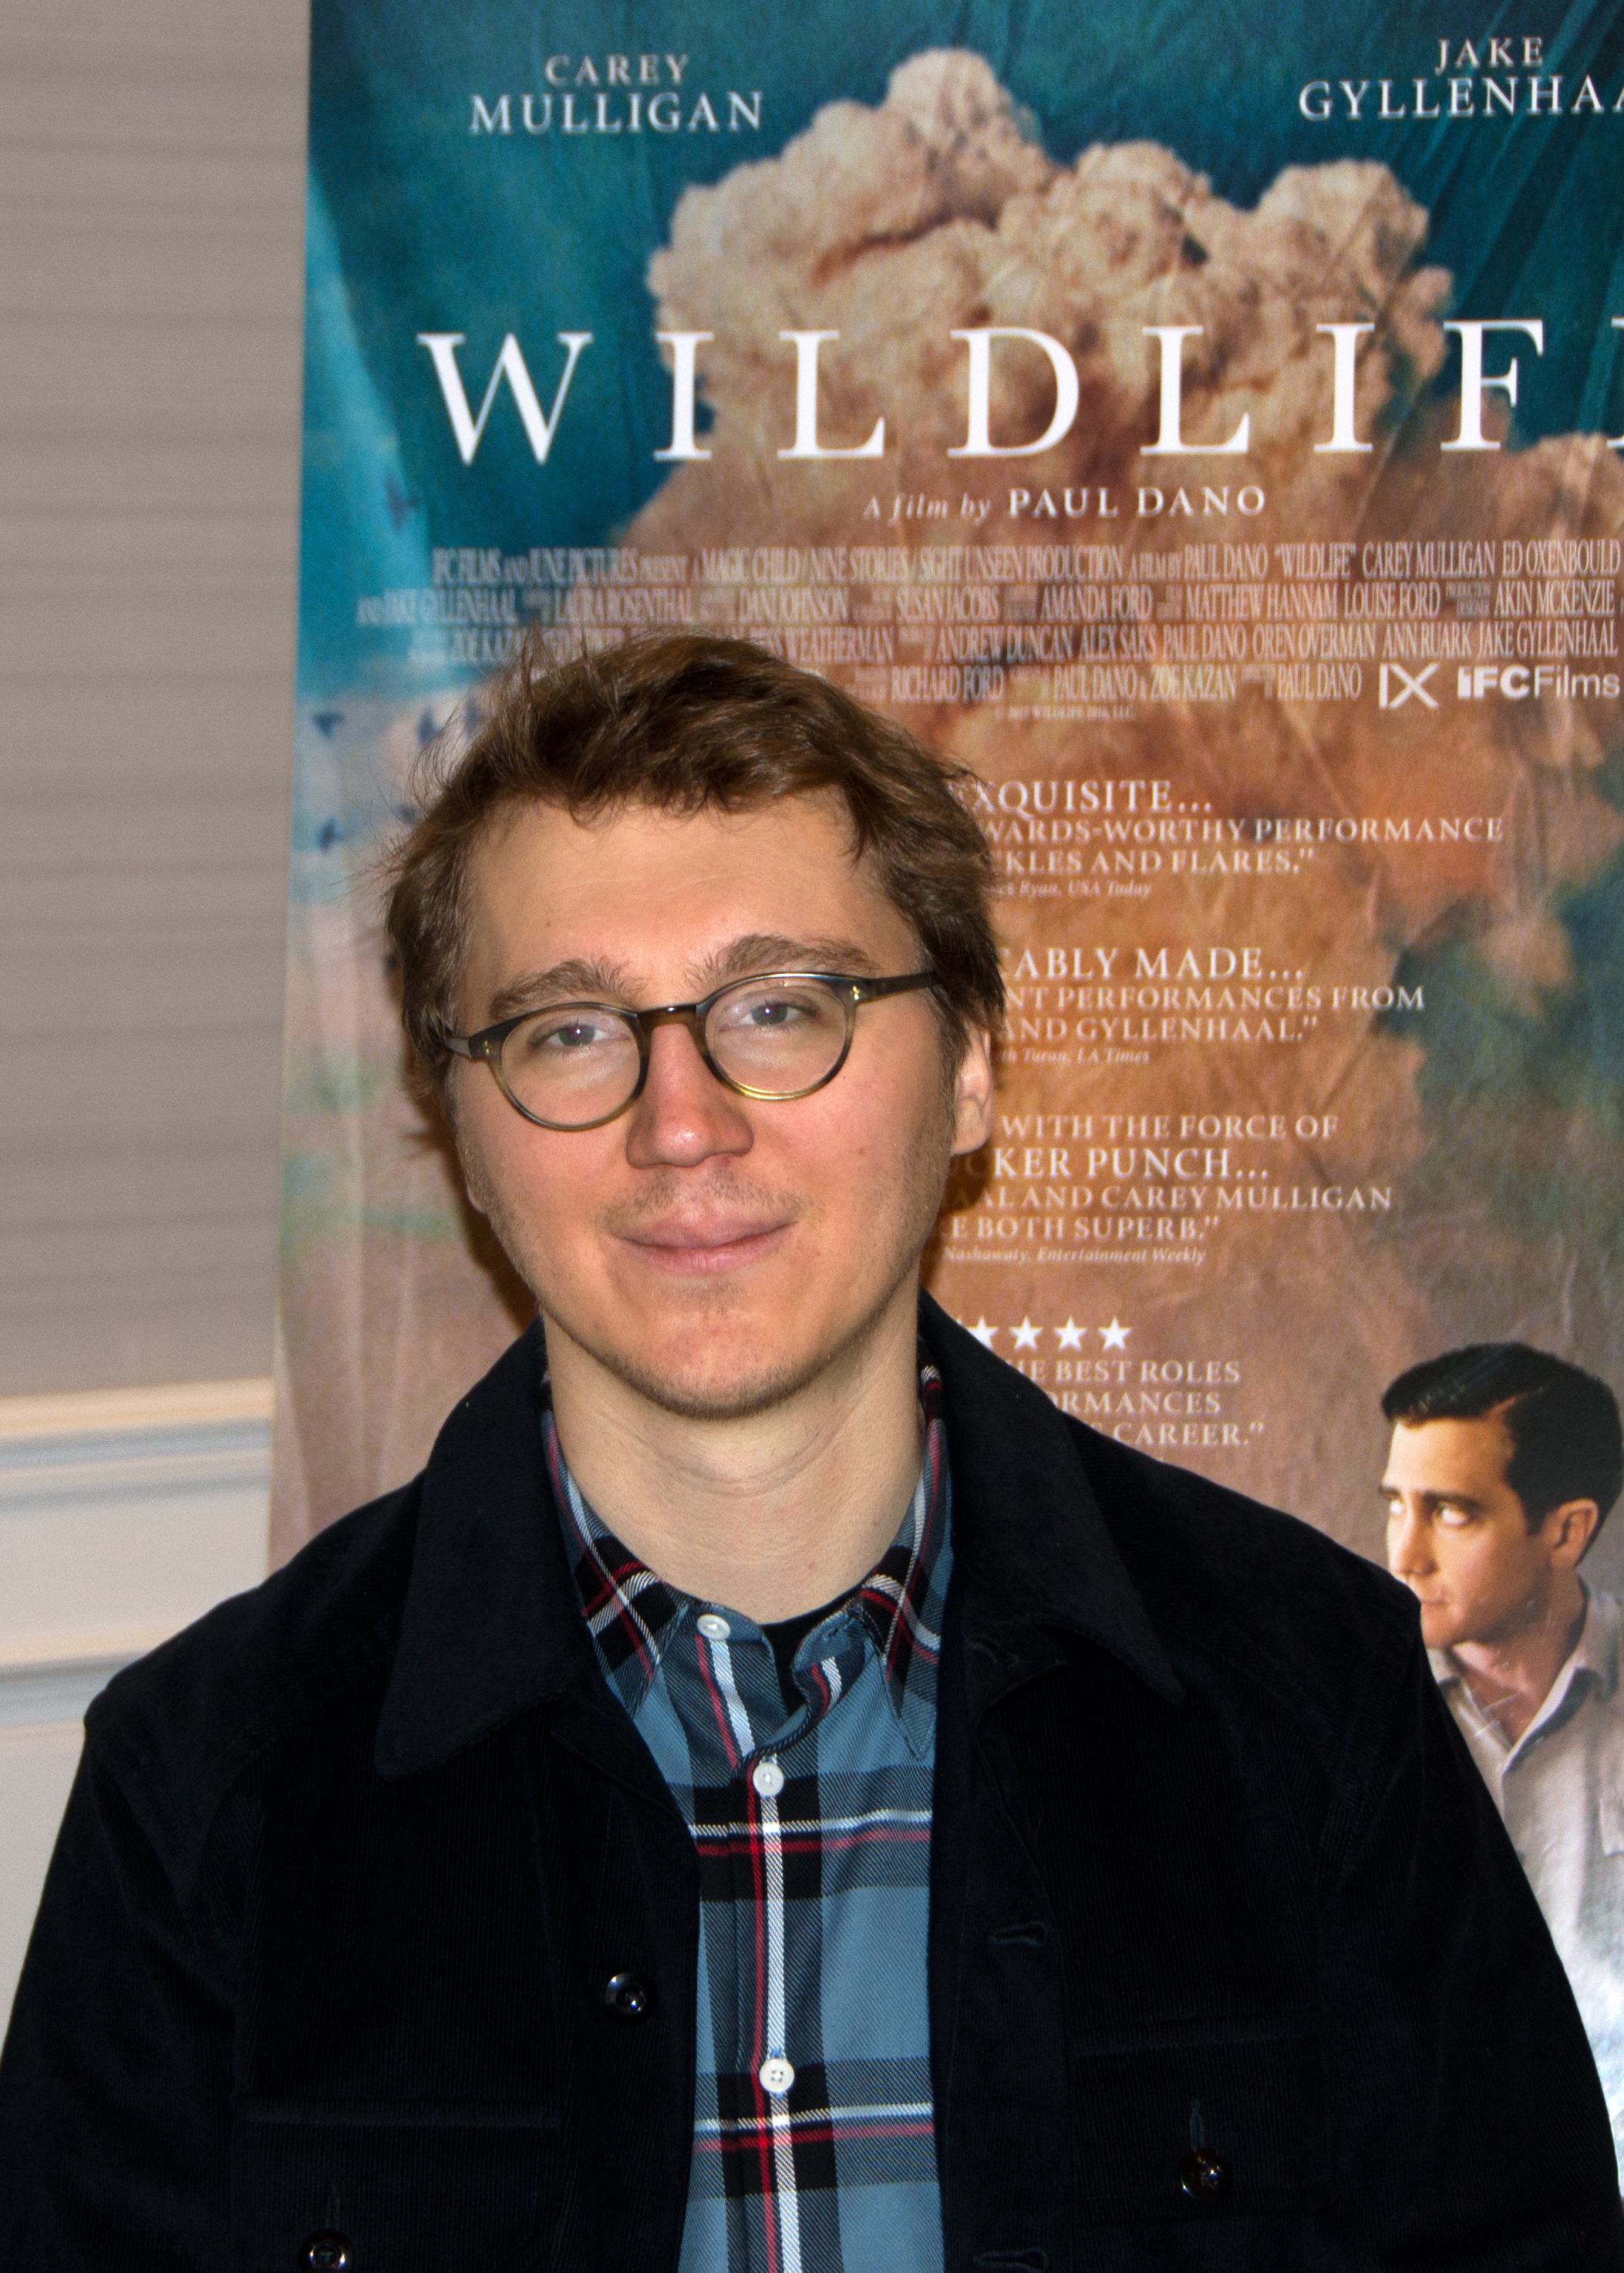 Caption: Paul Dano, San Francisco, CA 10/5/18, Credit: Andrea Chase